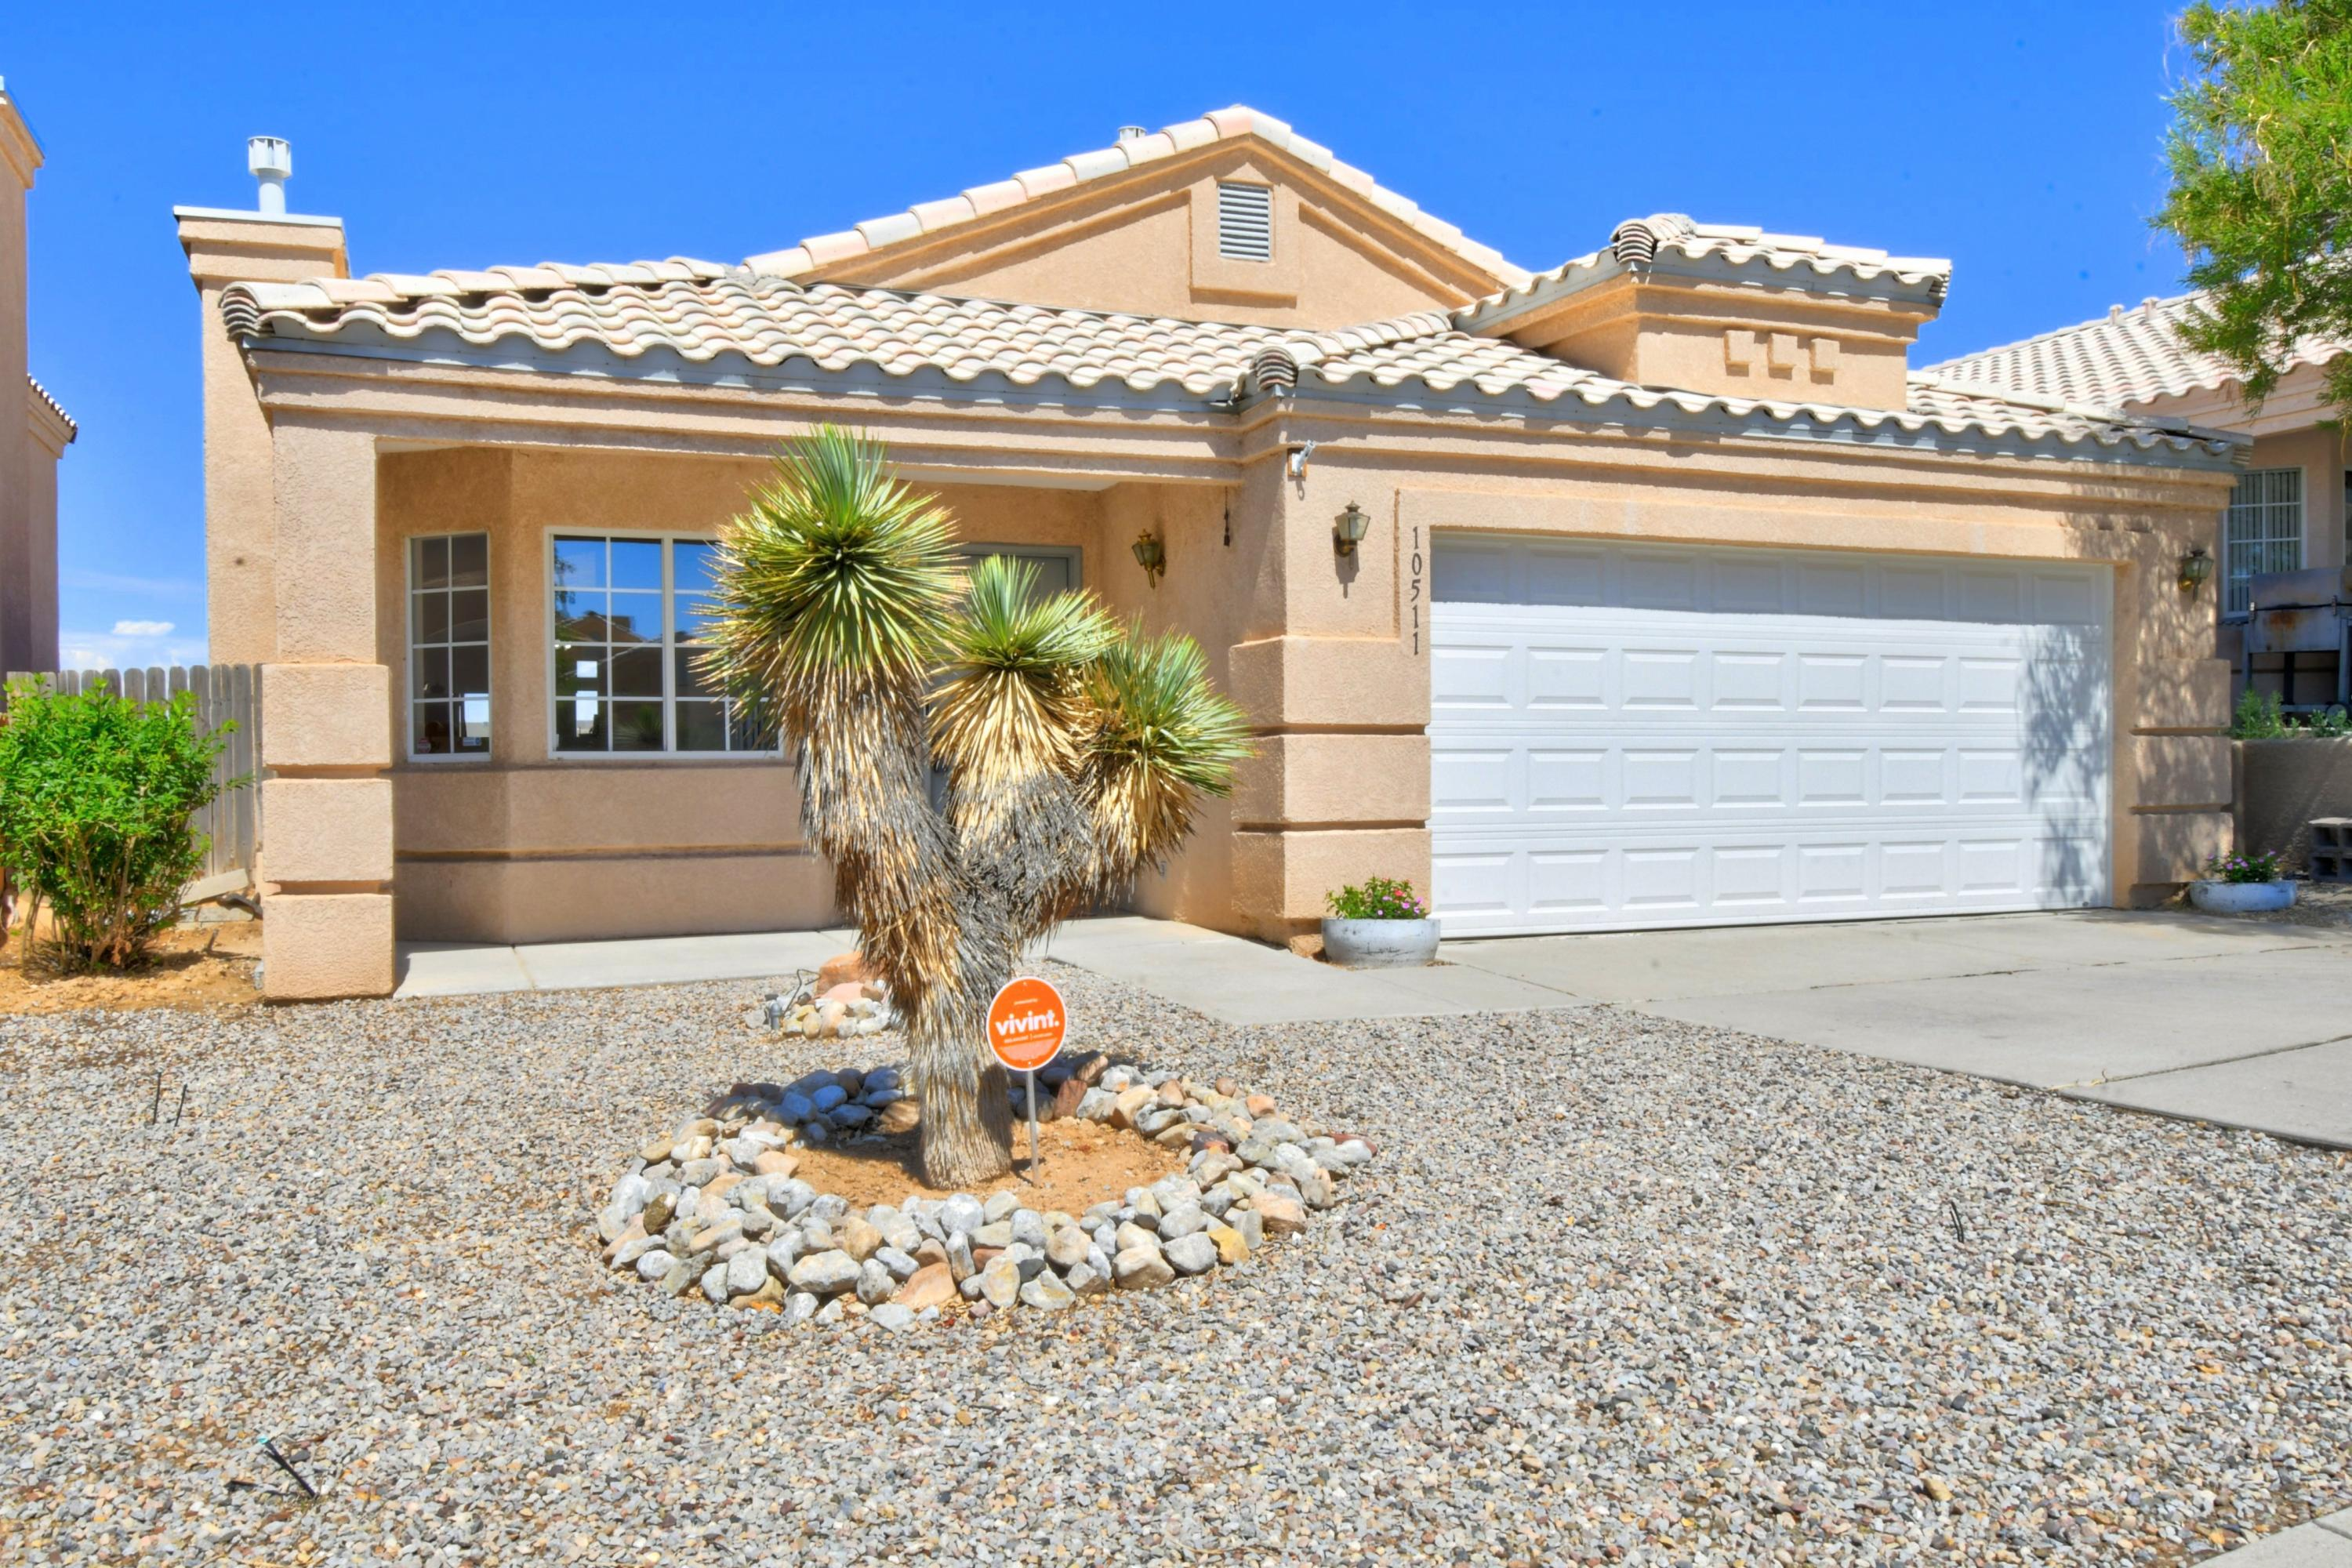 10511 BROOKLINE Place NW, Albuquerque, NM 87114 - Albuquerque, NM real estate listing